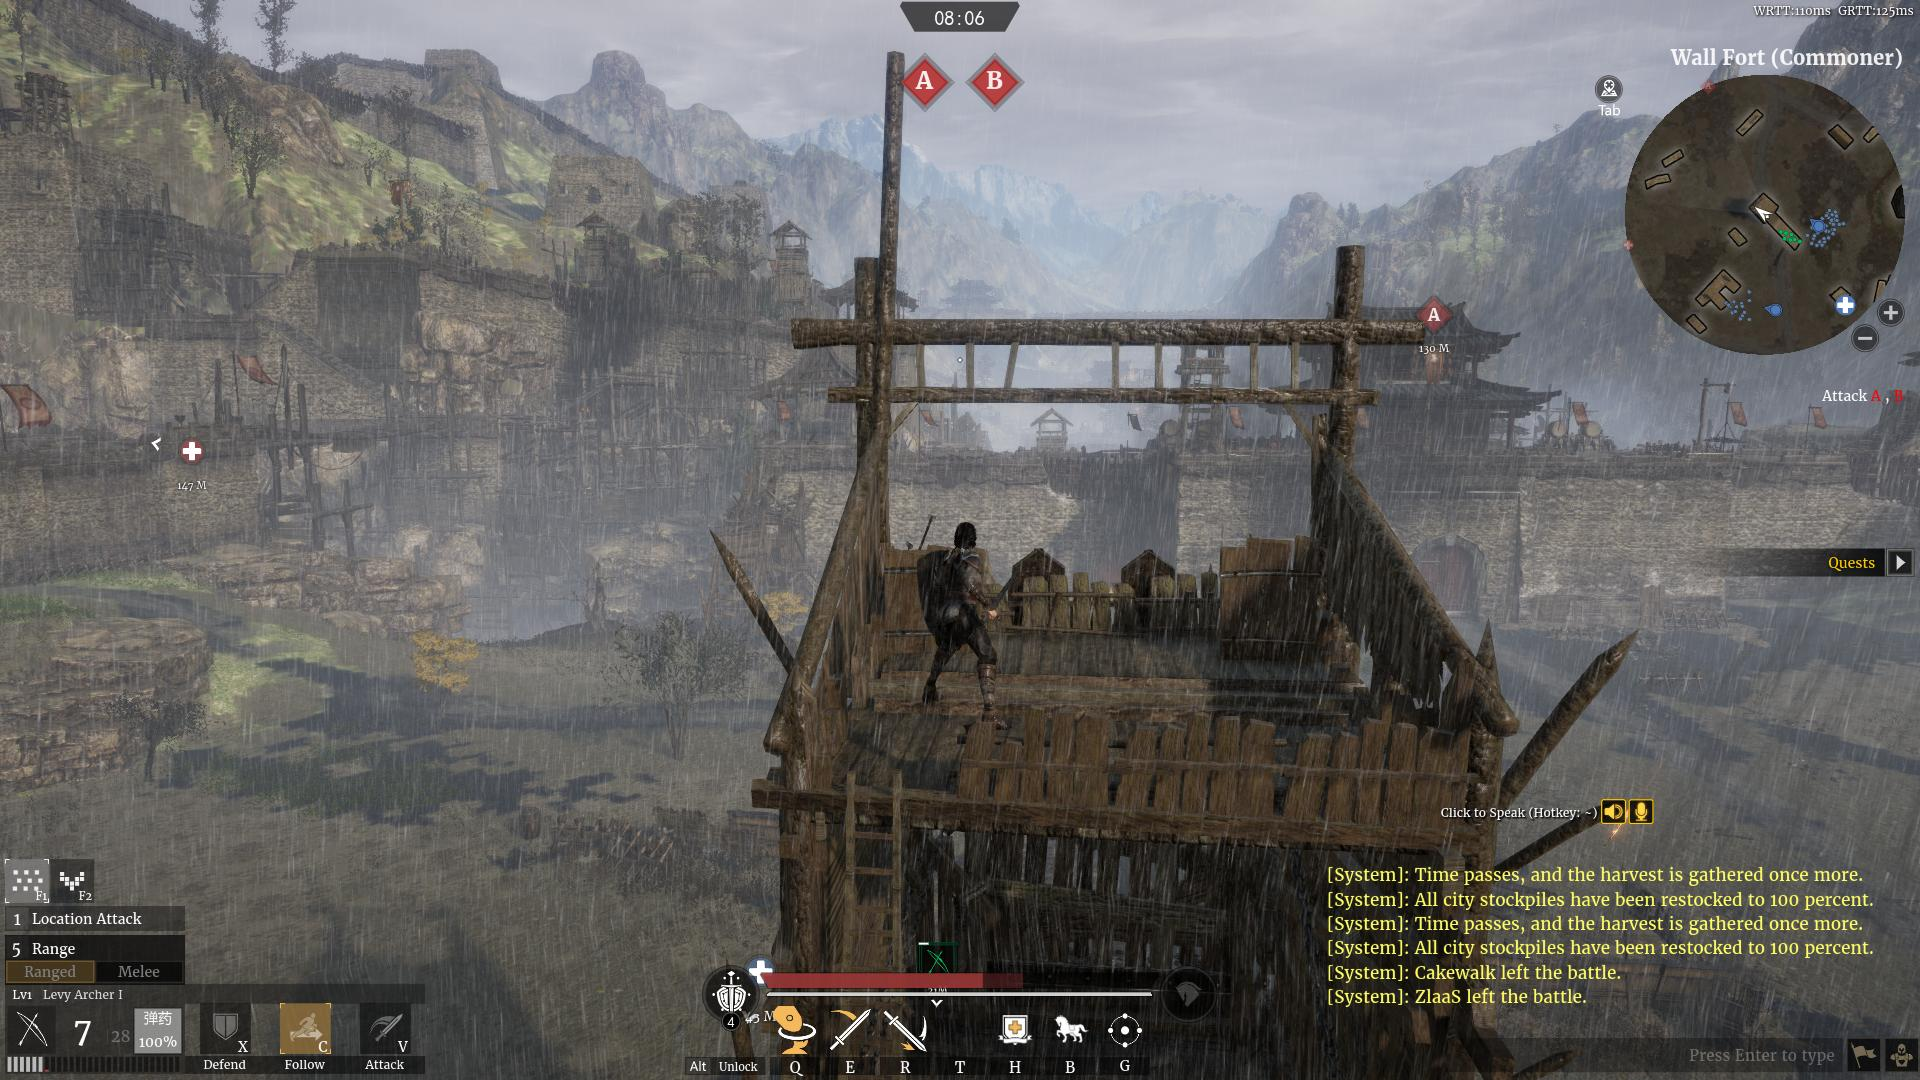 Conqueror's Blade Siege Test Hands-On Preview - Siege Tower